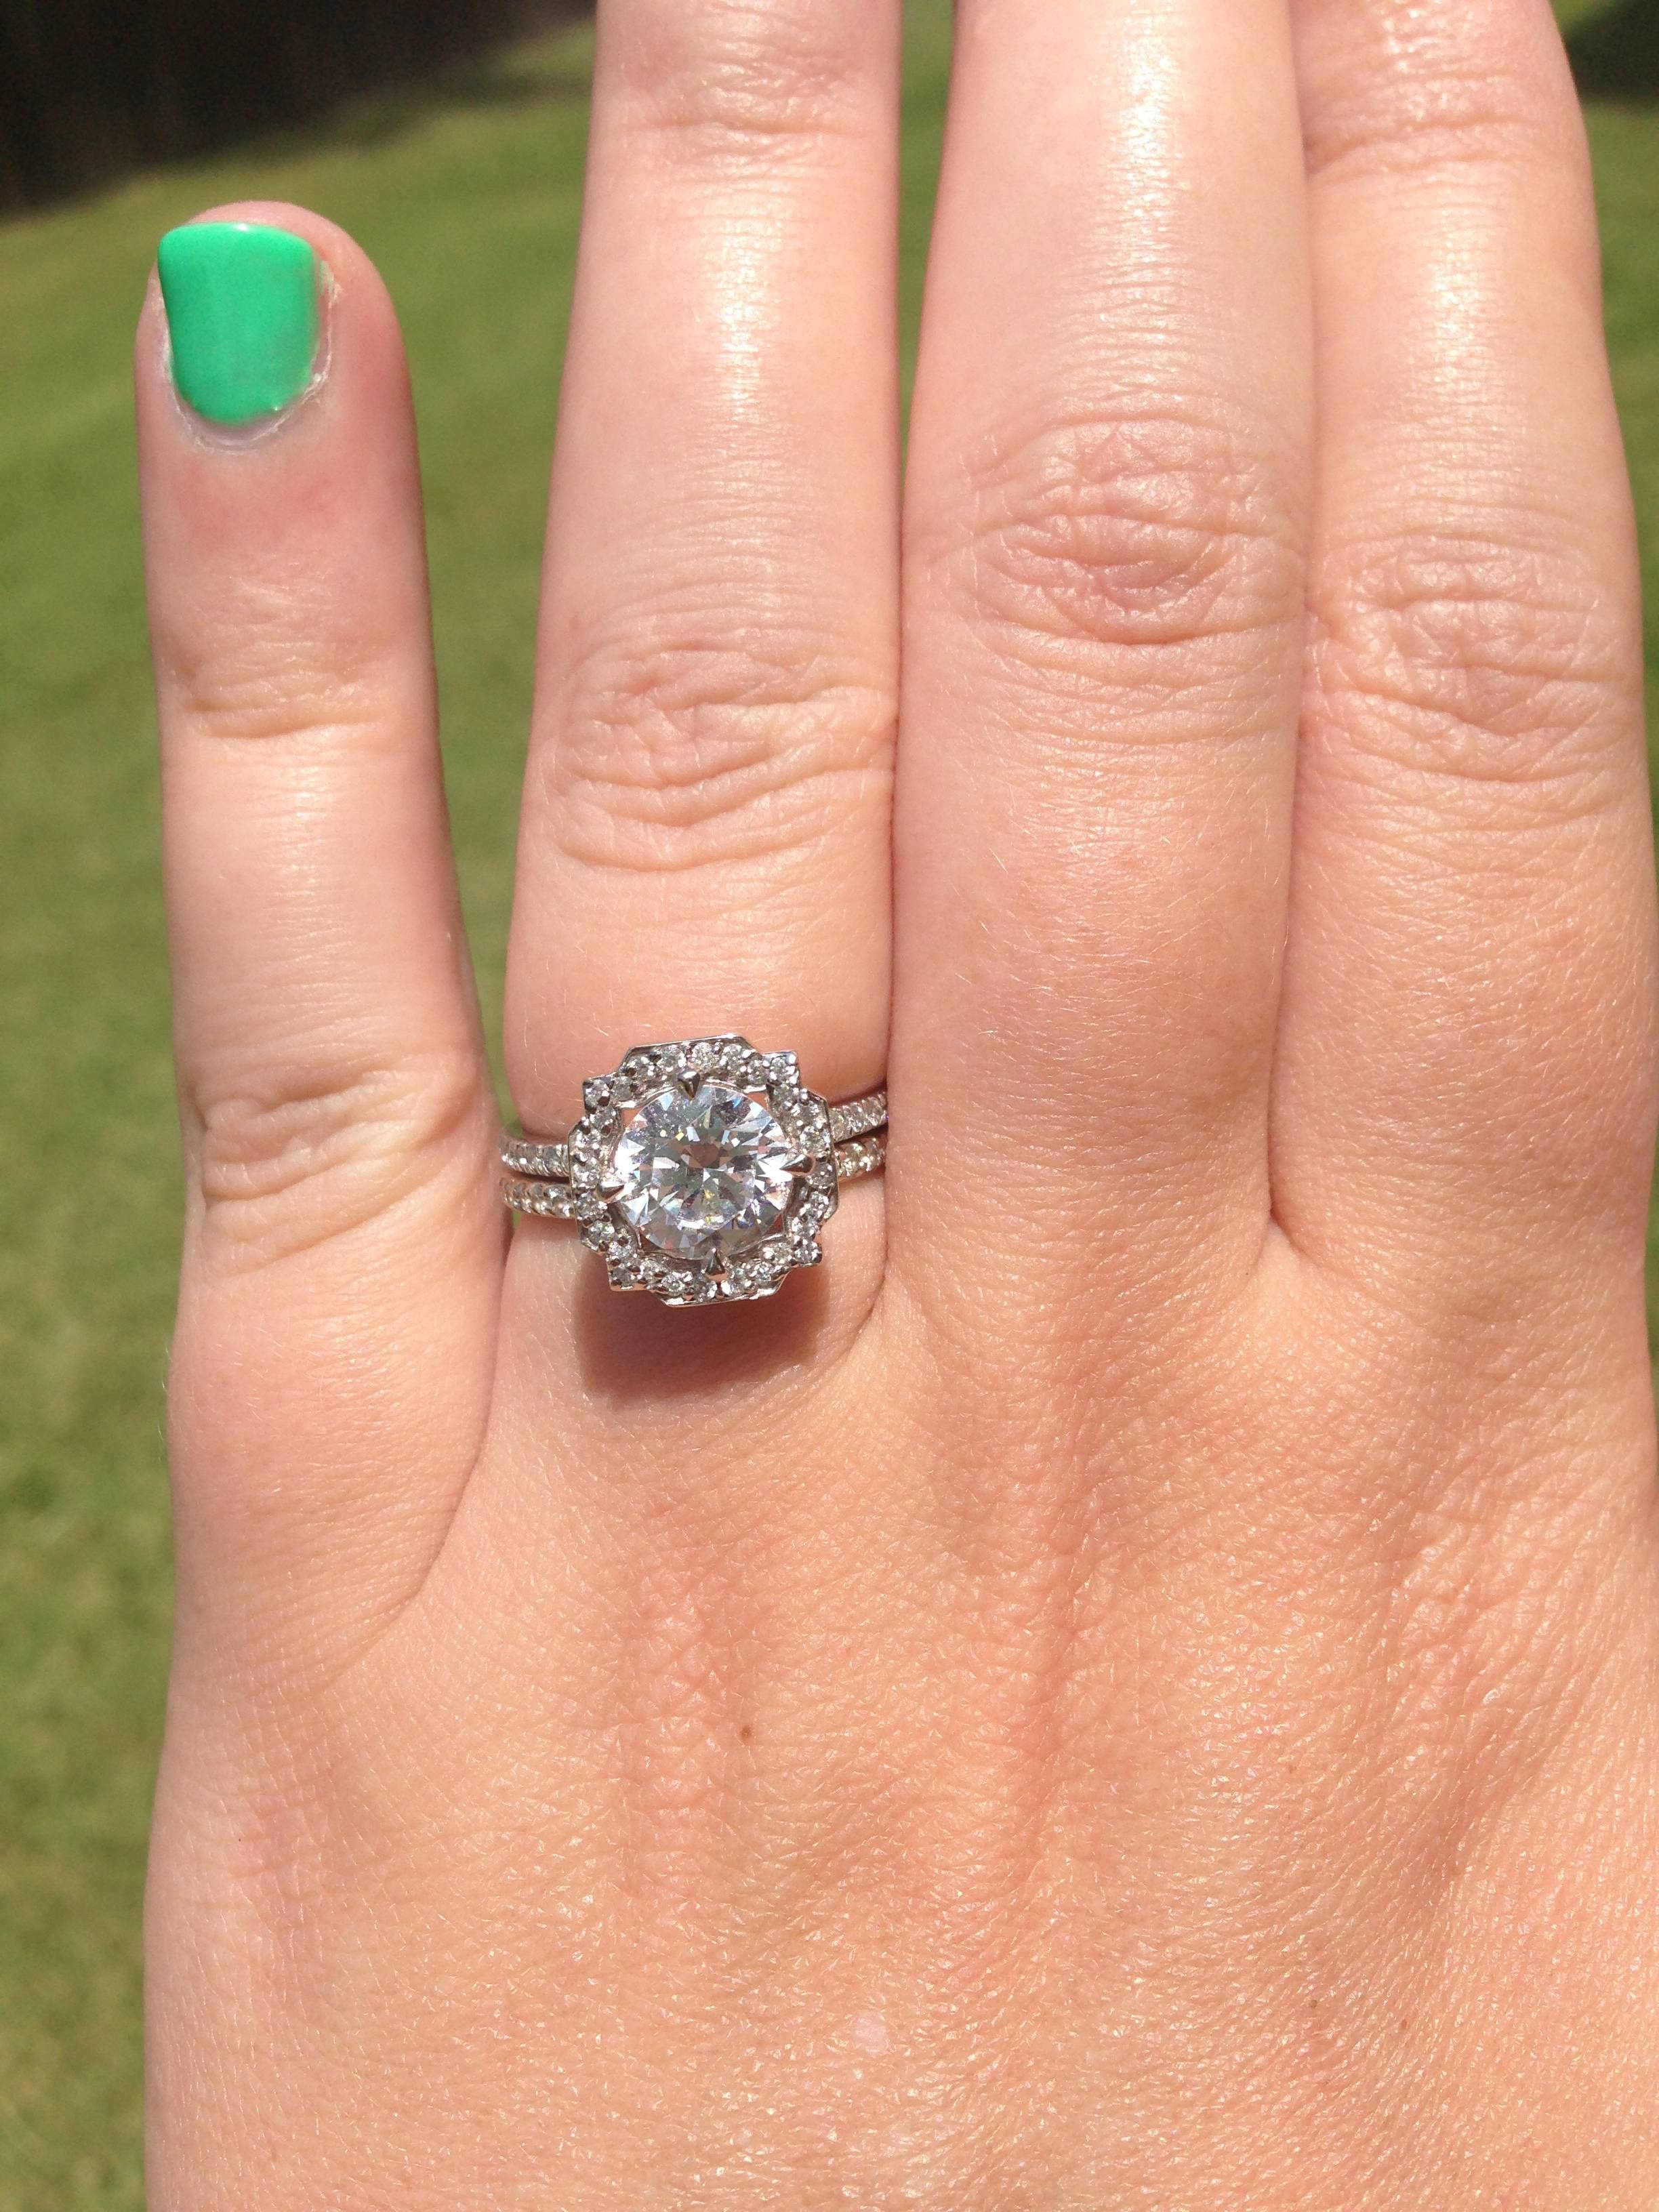 Just Got My Custom Hw Belle Inspired Ring! – Weddingbee Pertaining To Harry Winston Belle Engagement Rings (View 12 of 15)